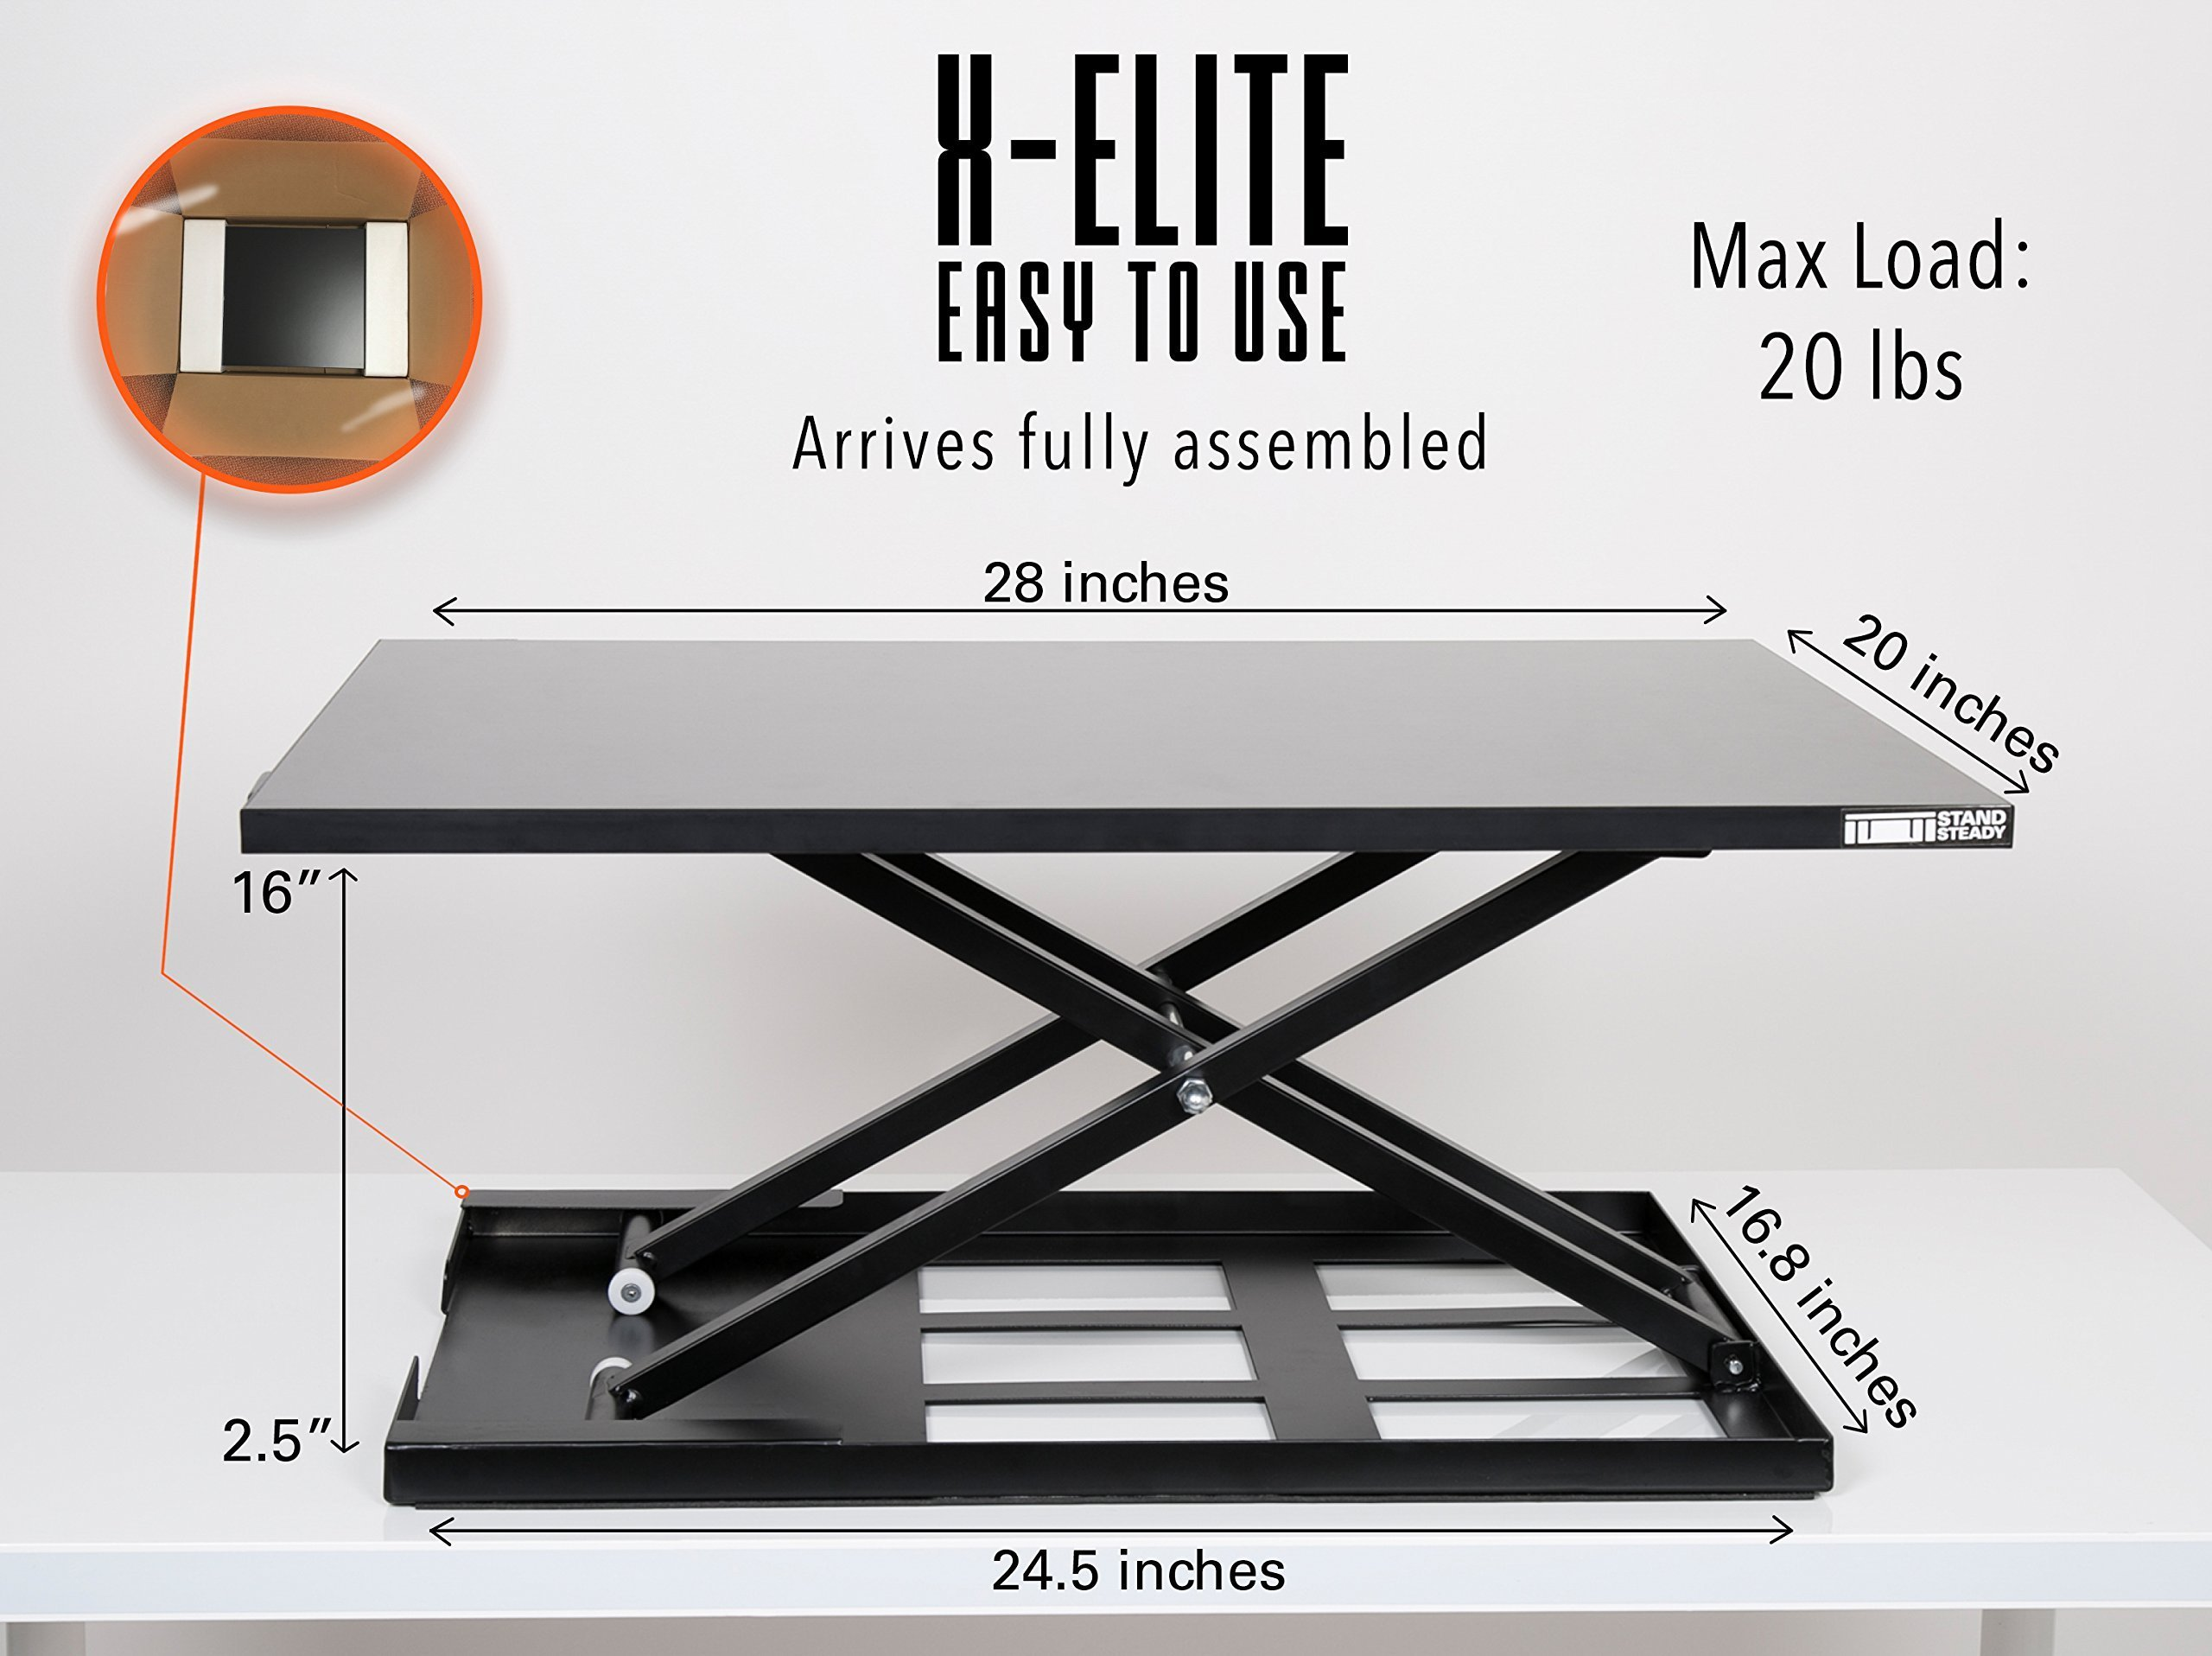 Standing Desk - X-Elite Pro Height Adjustable Desk Converter - Size 28in x 20in Instantly Convert any Desk to a Sit / Stand up Desk (Black) by Stand Steady (Image #6)